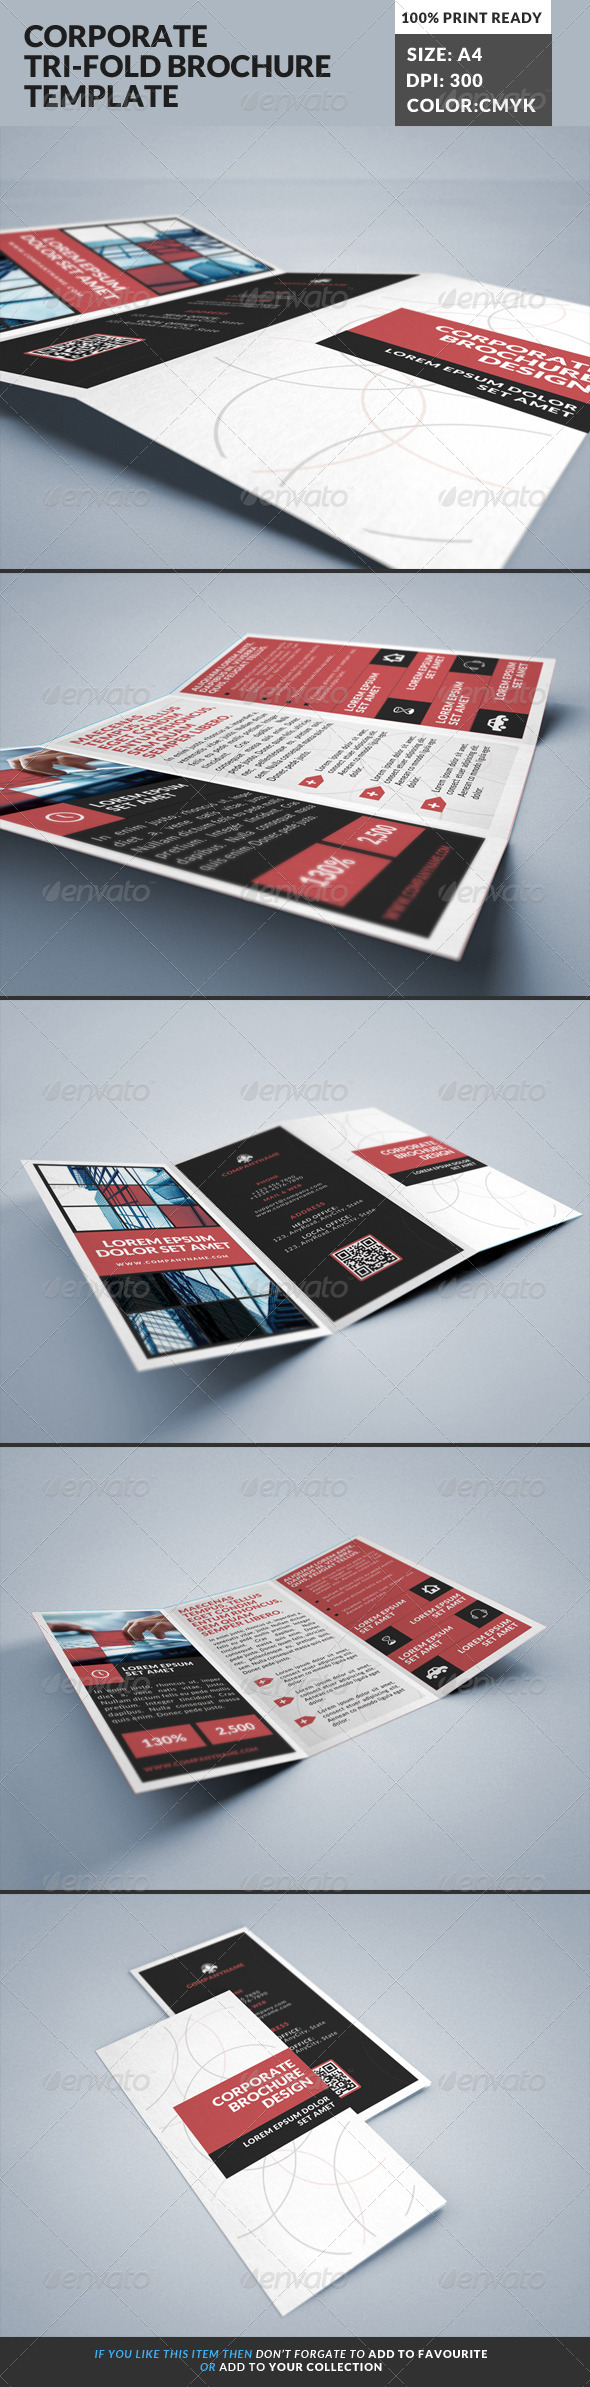 GraphicRiver Corporate Tri-Fold Brochures Template 21 8587544